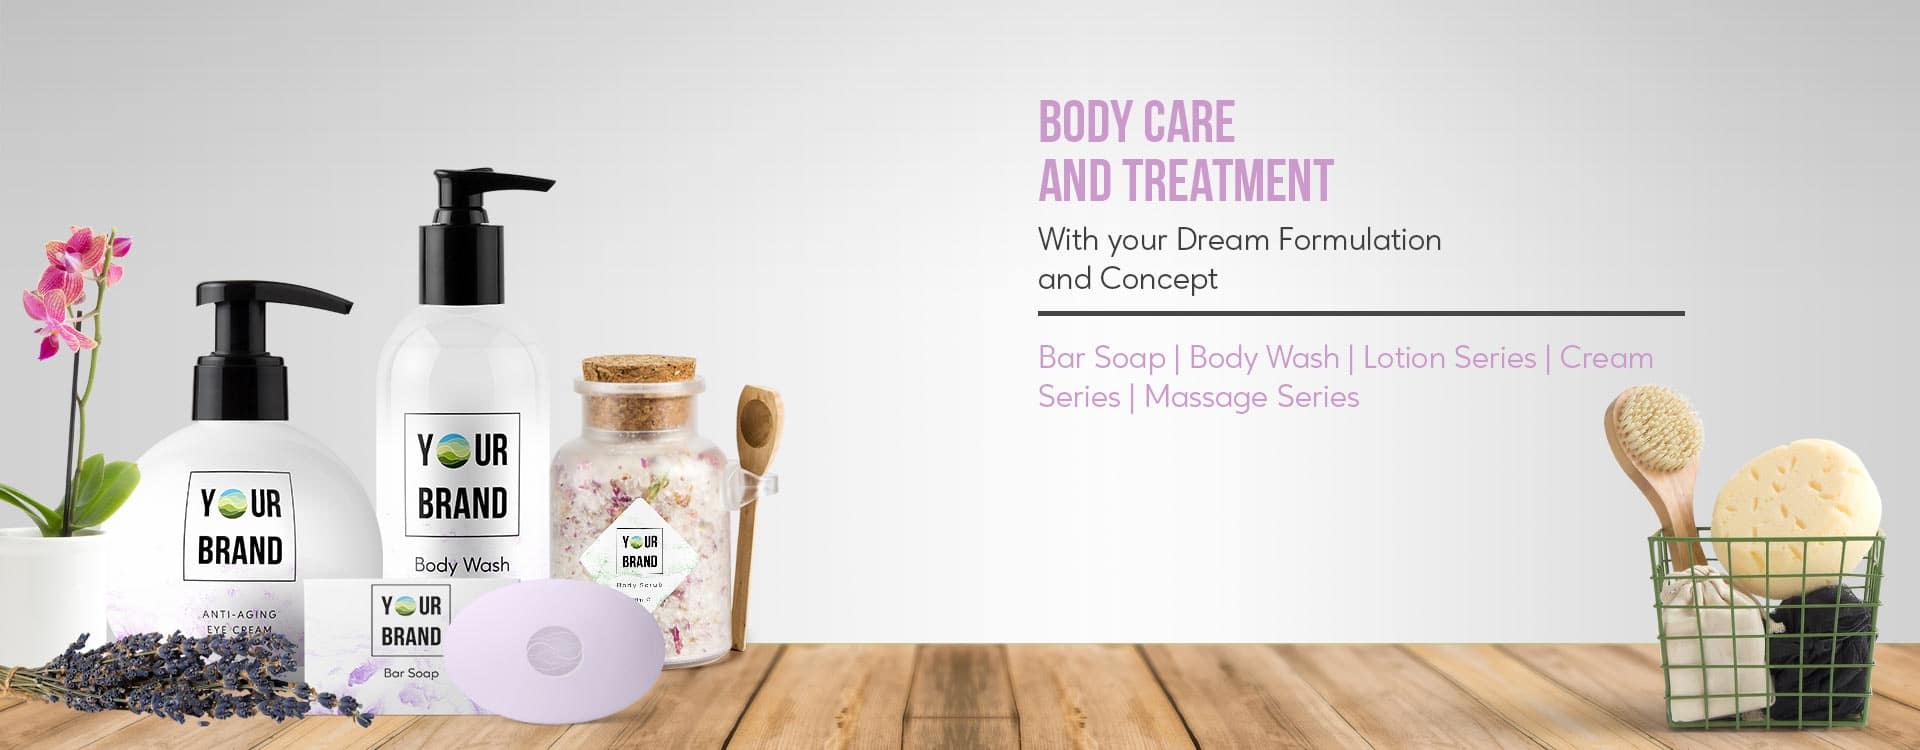 Body Care & Treatment